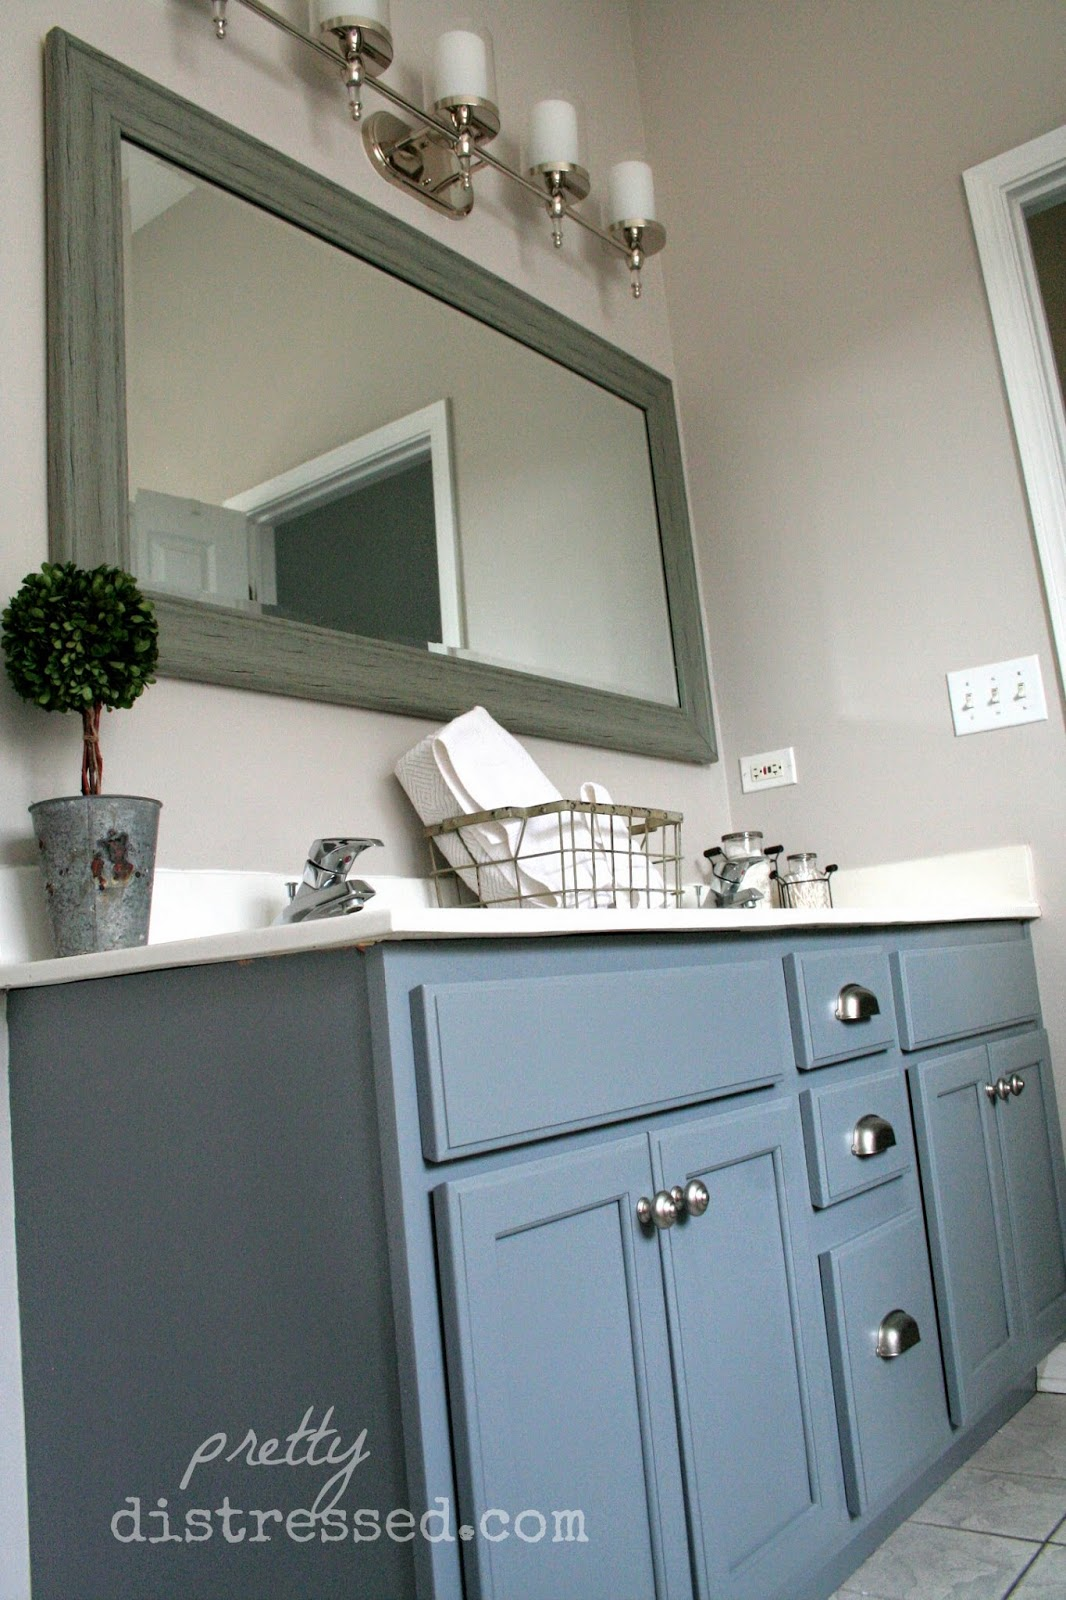 Painting Bathroom Cabinet pretty distressed: bathroom vanity makeover with latex paint